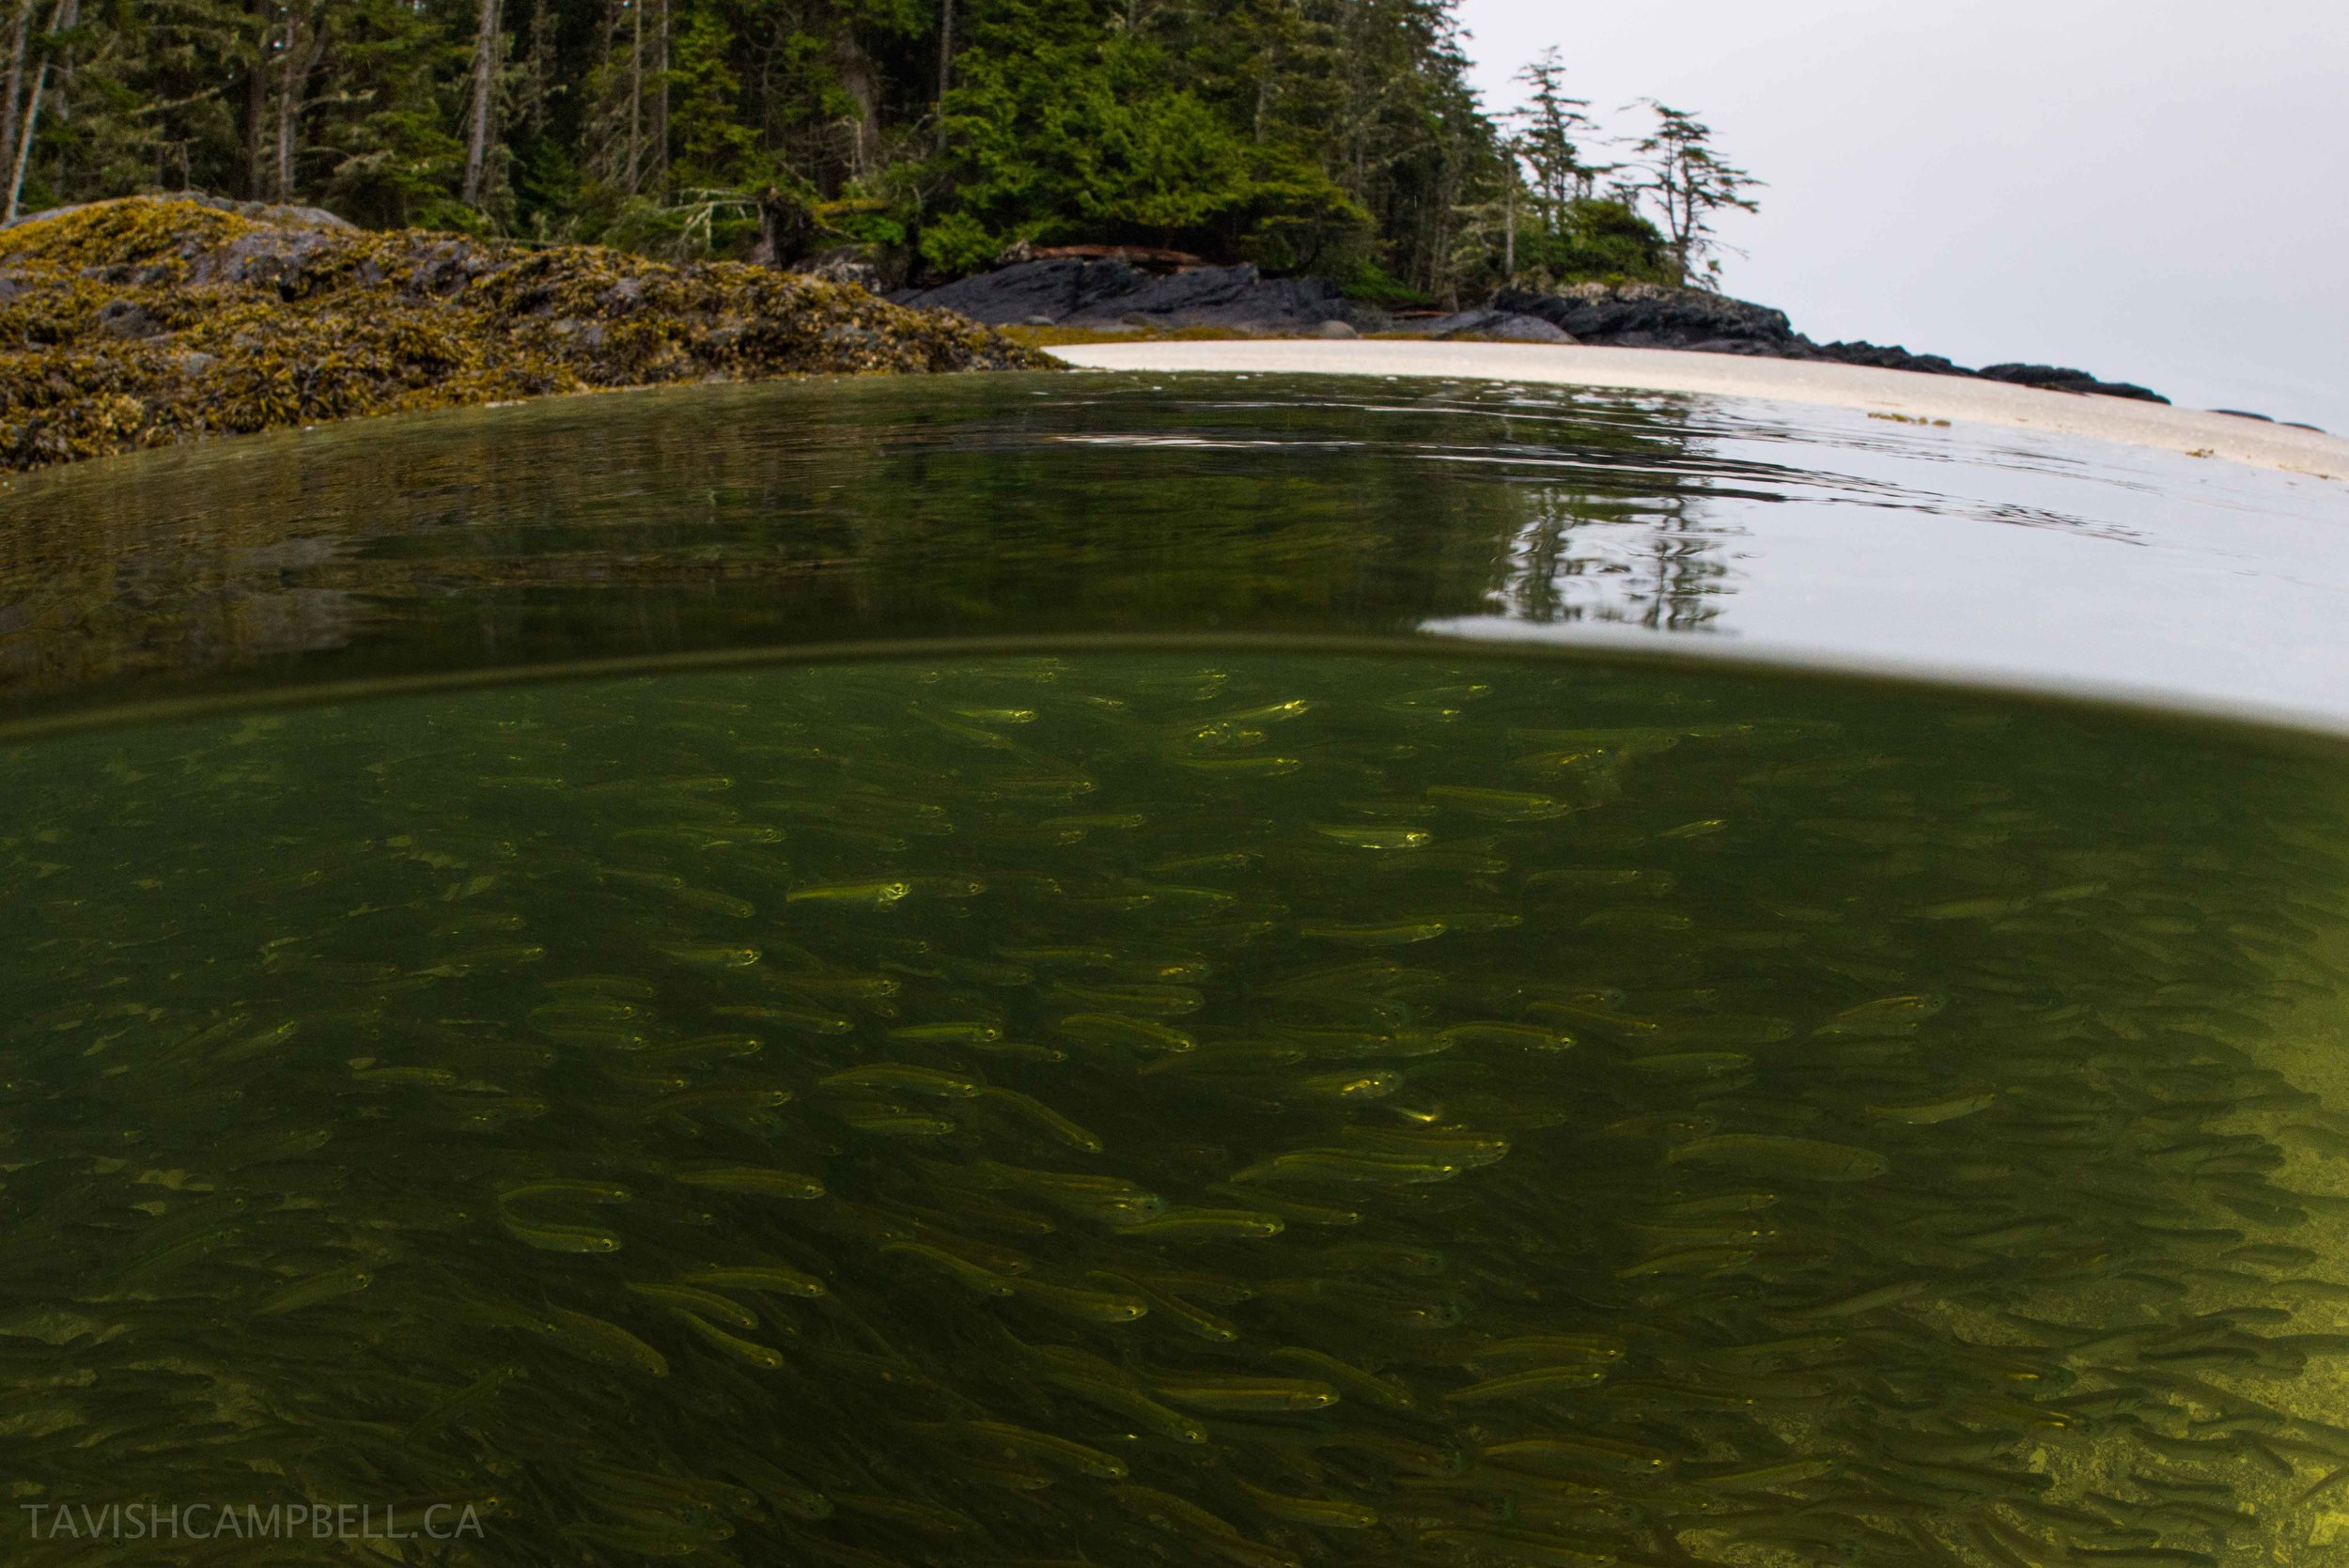 Juvenile pink salmon seek the protection of sheltered bays along East Kinahan Is. after leaving the Skeena River on their migration to the open ocean.